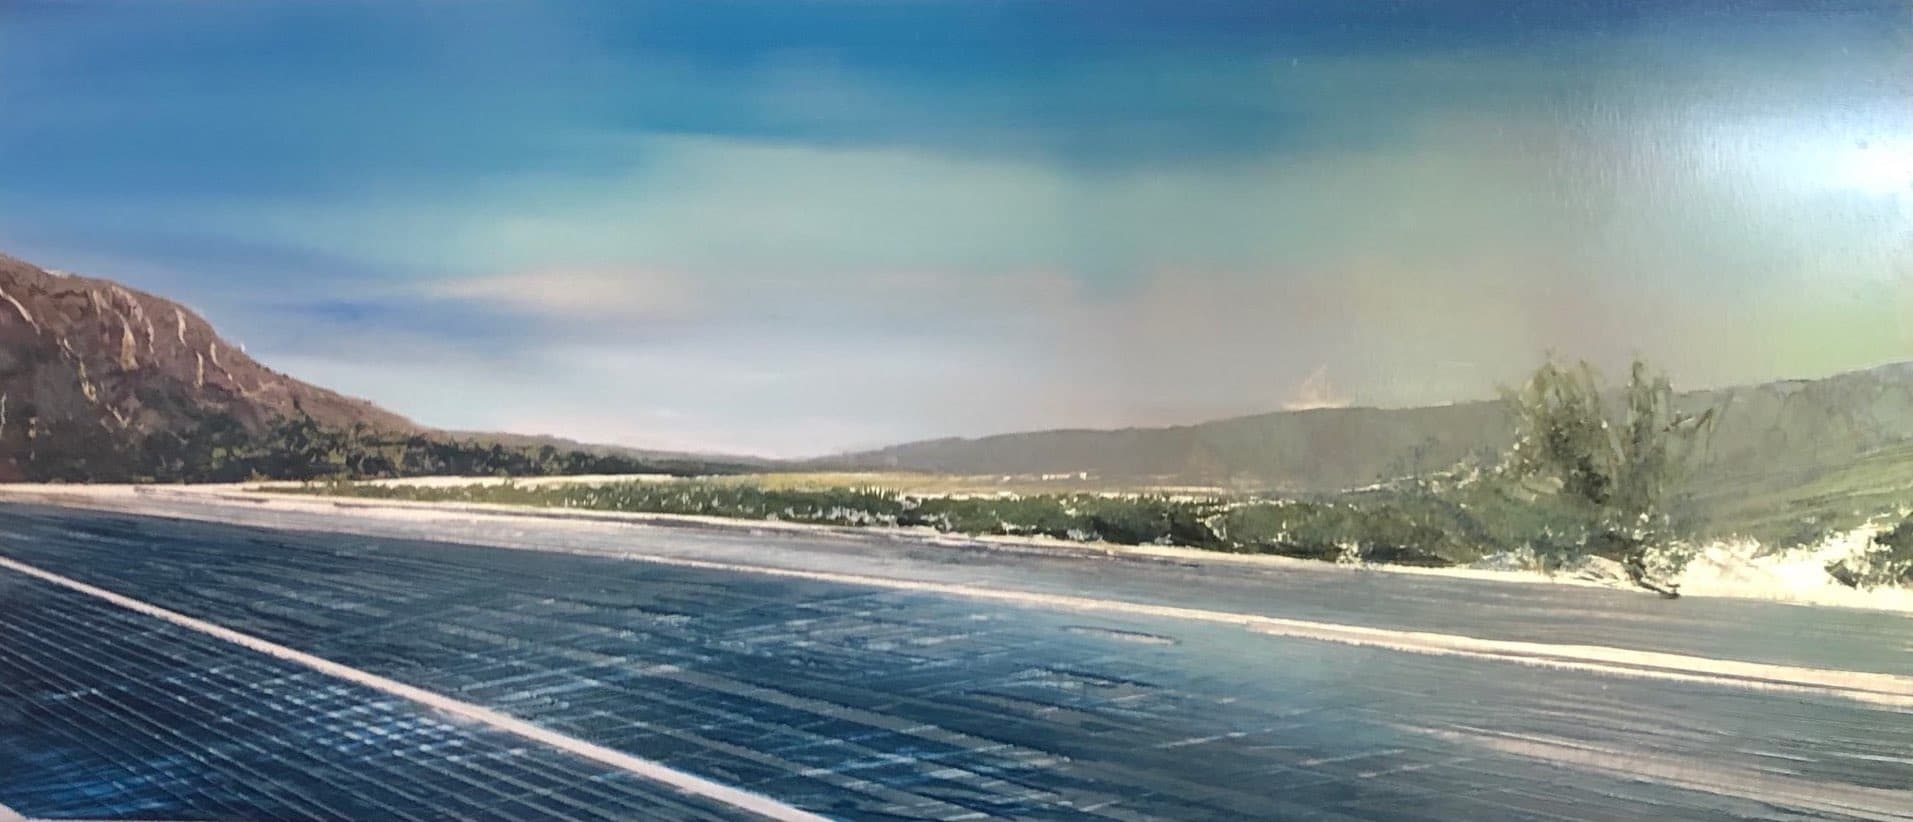 Desert Highway, Contemporary oil painting on metal in wide format of a desert road, Fine Art by Cynthia McLoughlin